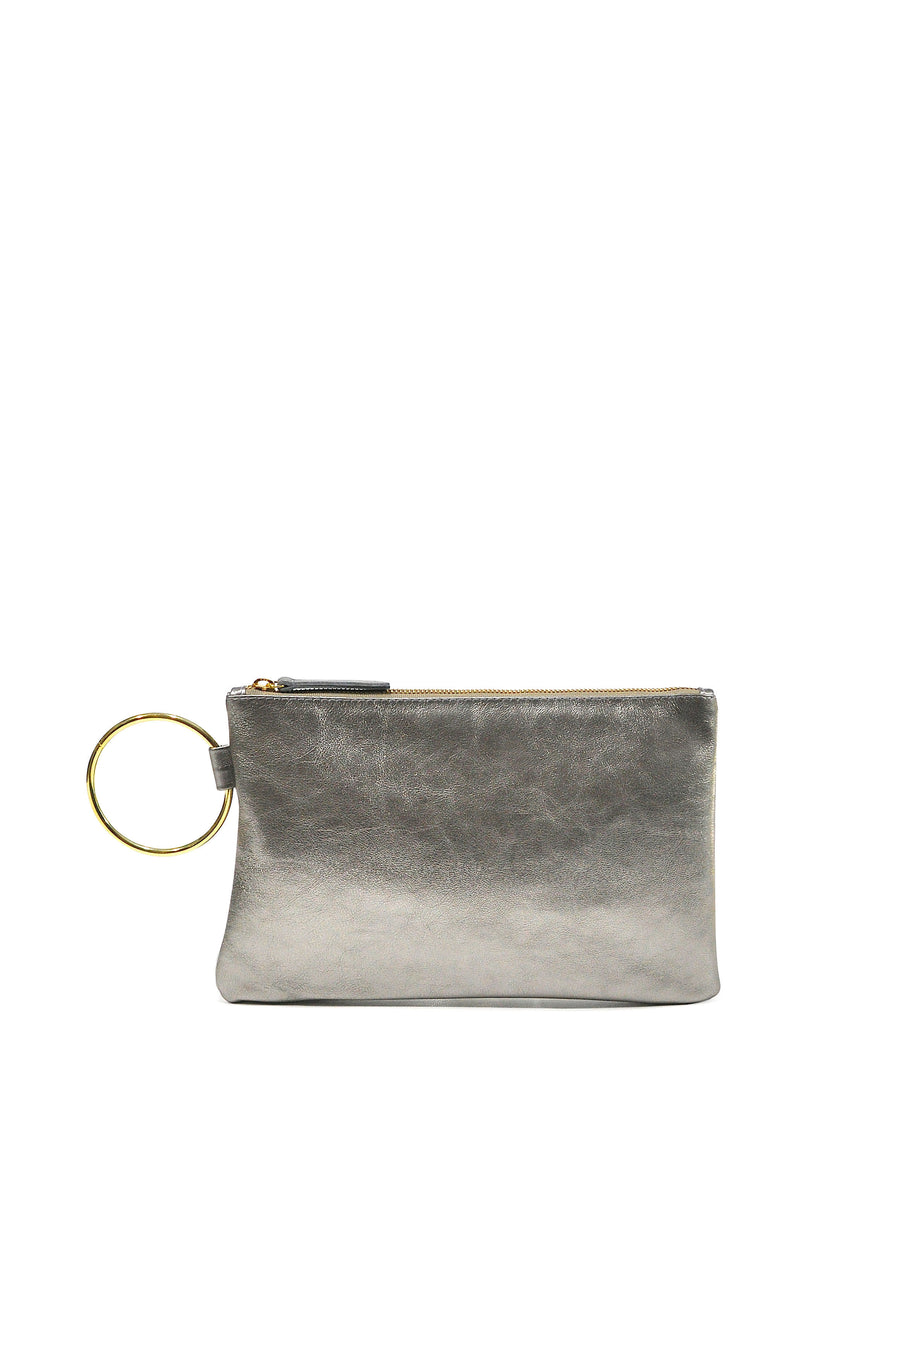 Gavi Leather Clutch Camel - Positive Elements